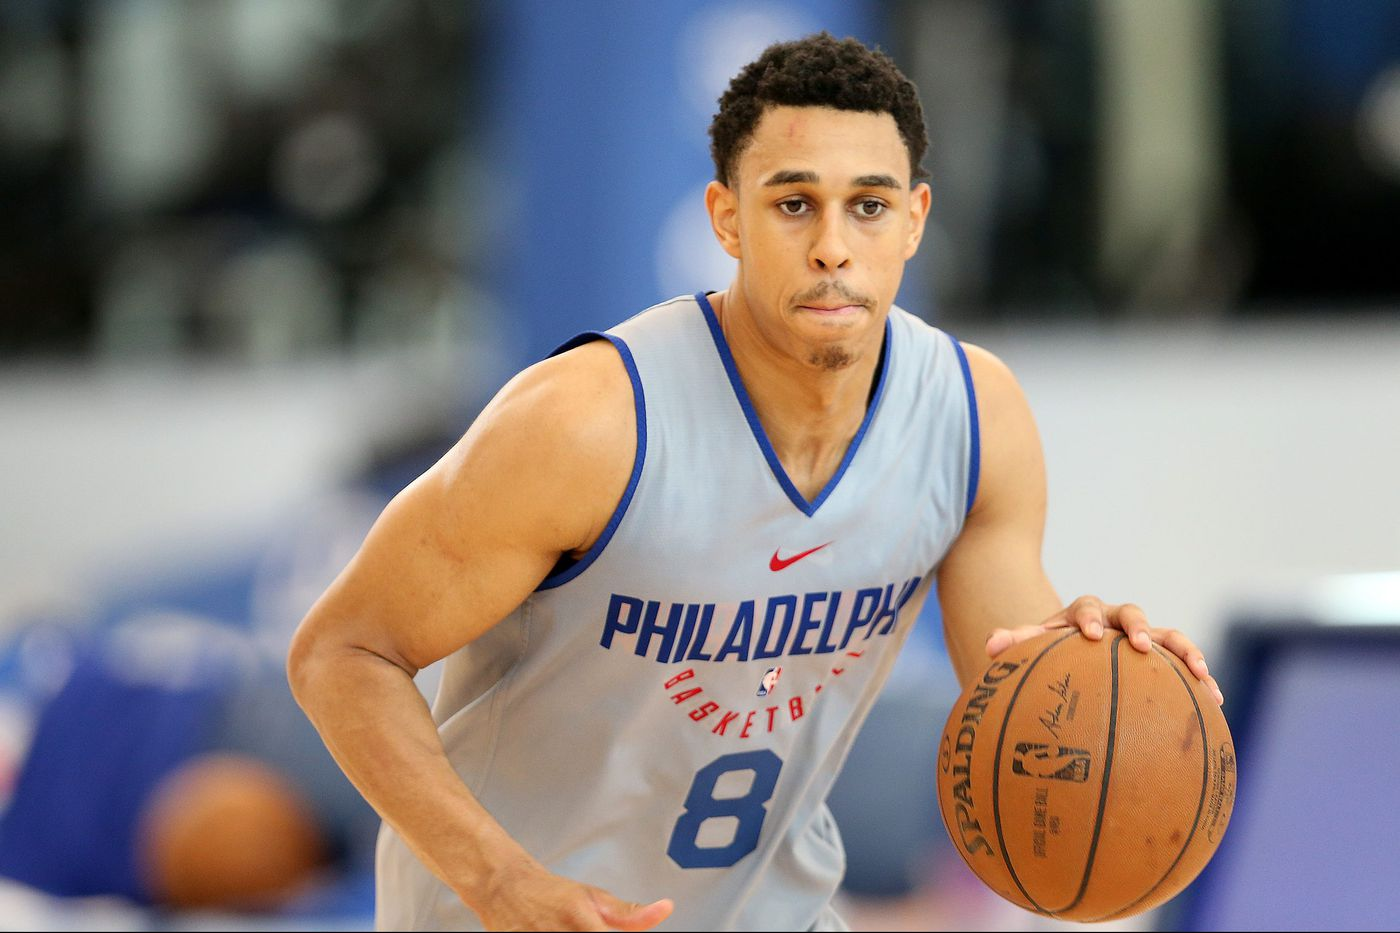 For young Sixers Zhaire Smith and Furkan Korkmaz, there's still work to do